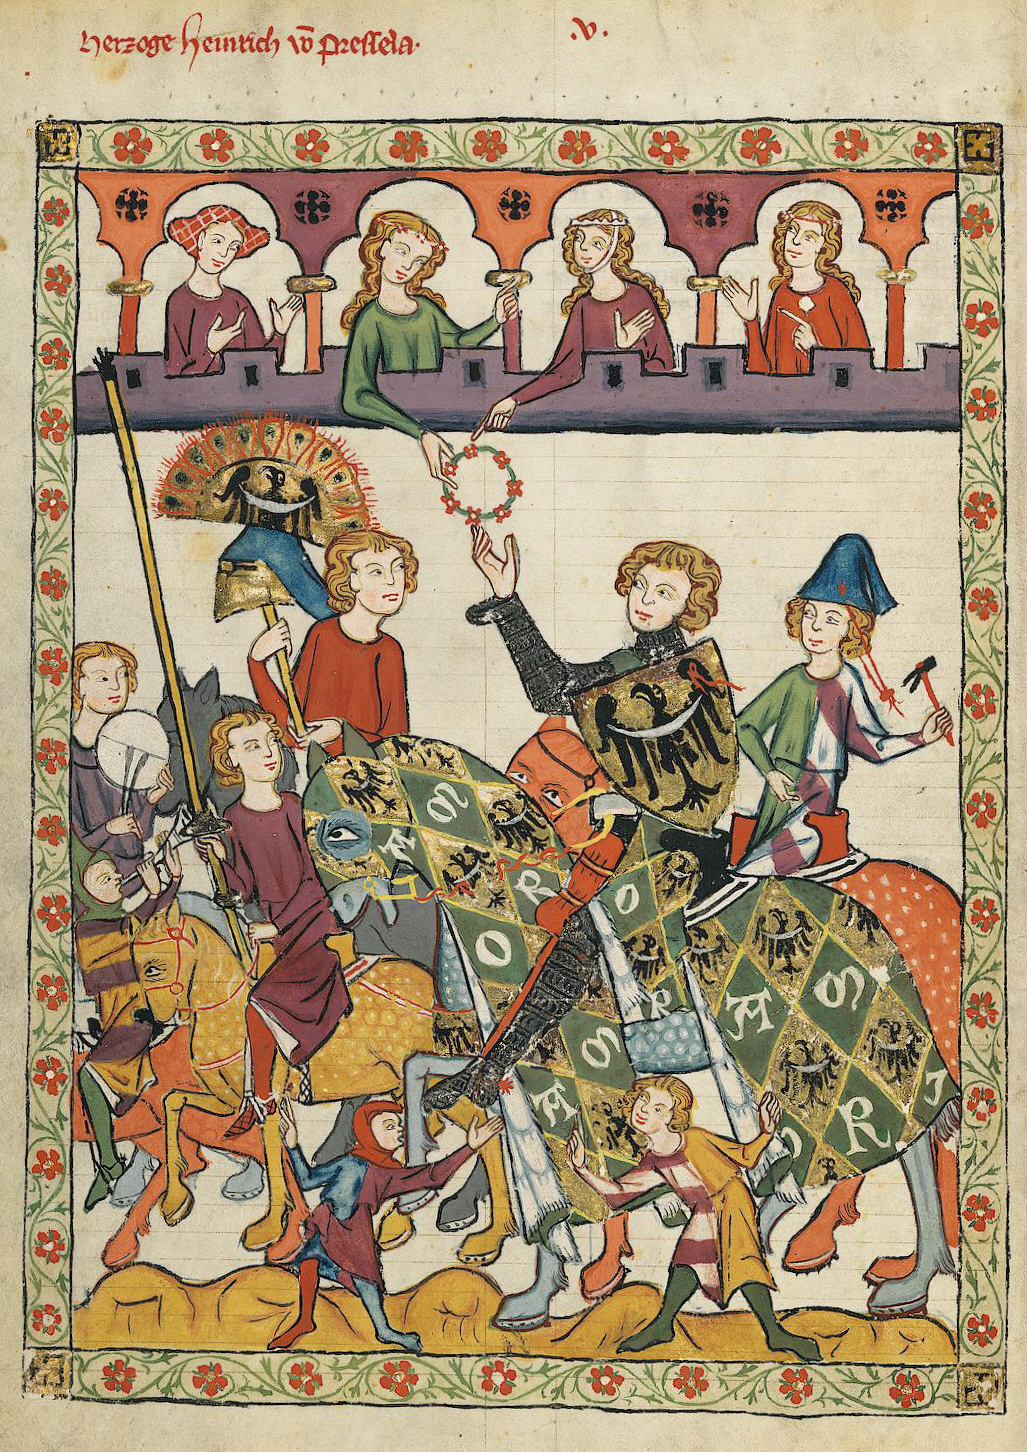 a knight receiving a lady's favor